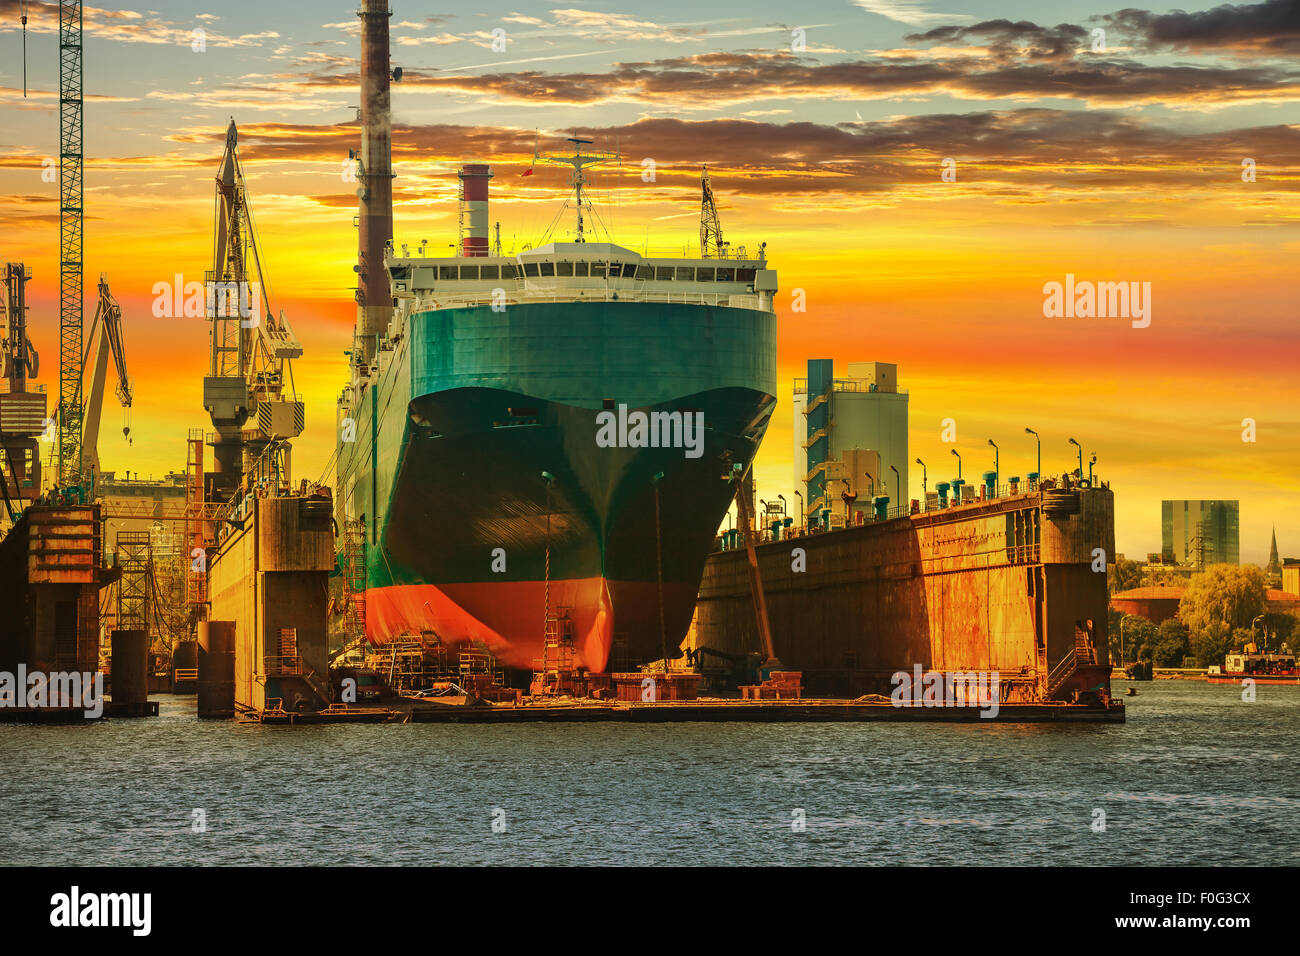 Ship being repaired in dry dock at sunset in Gdansk, Poland. Stock Photo